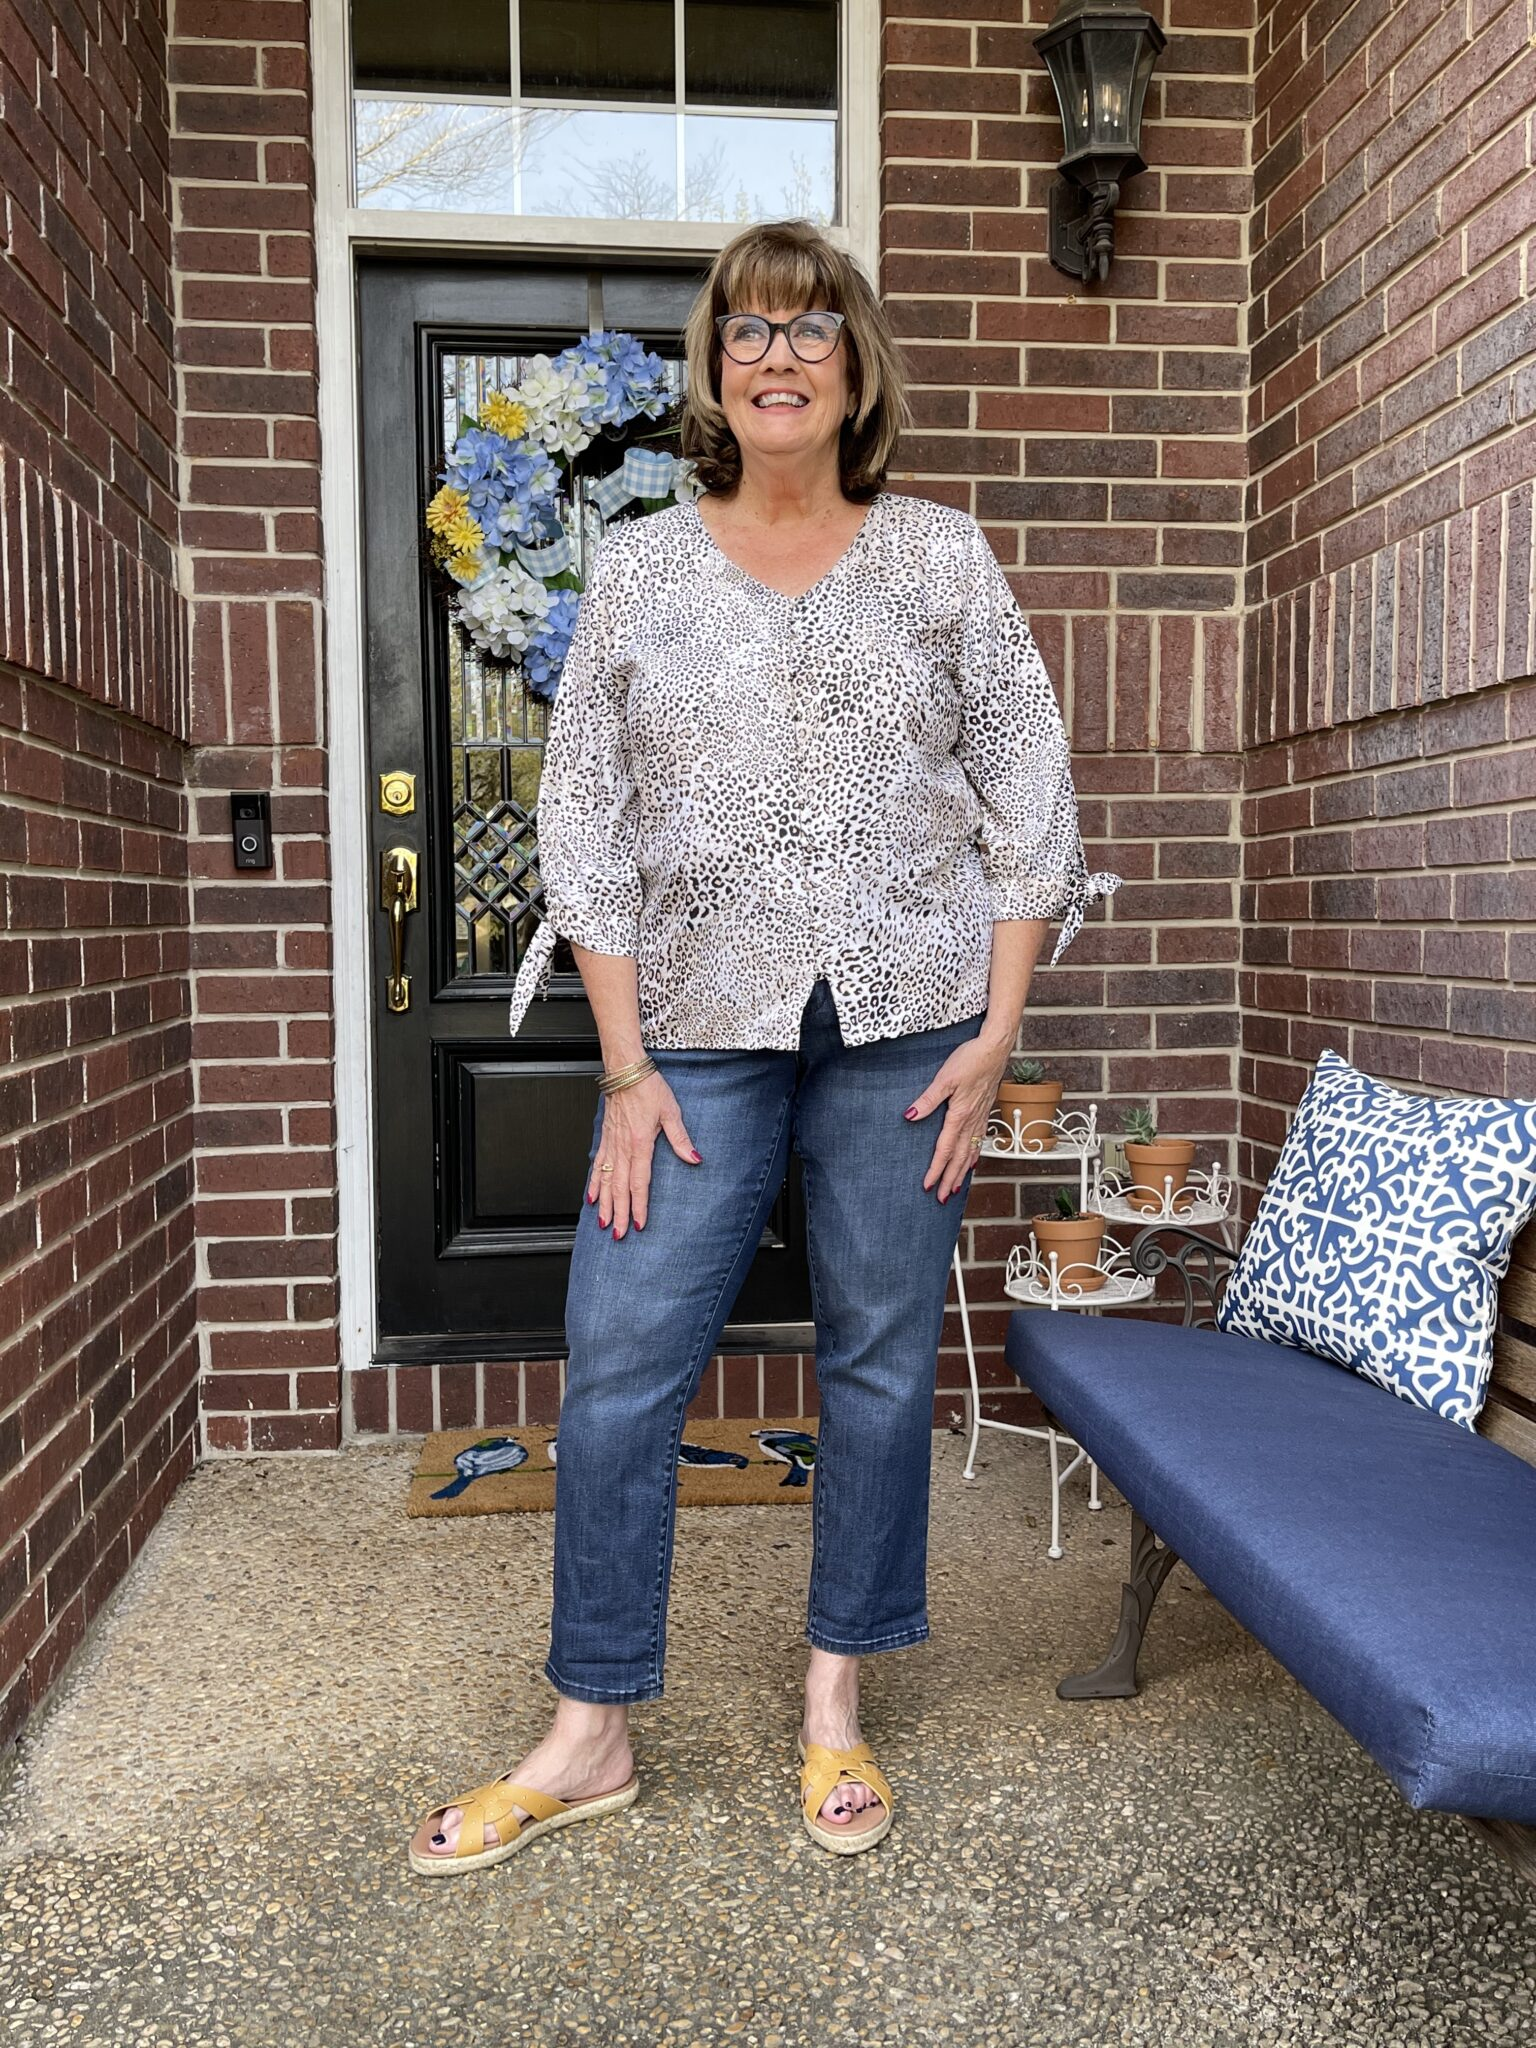 One little change to casual at home style makes a huge difference